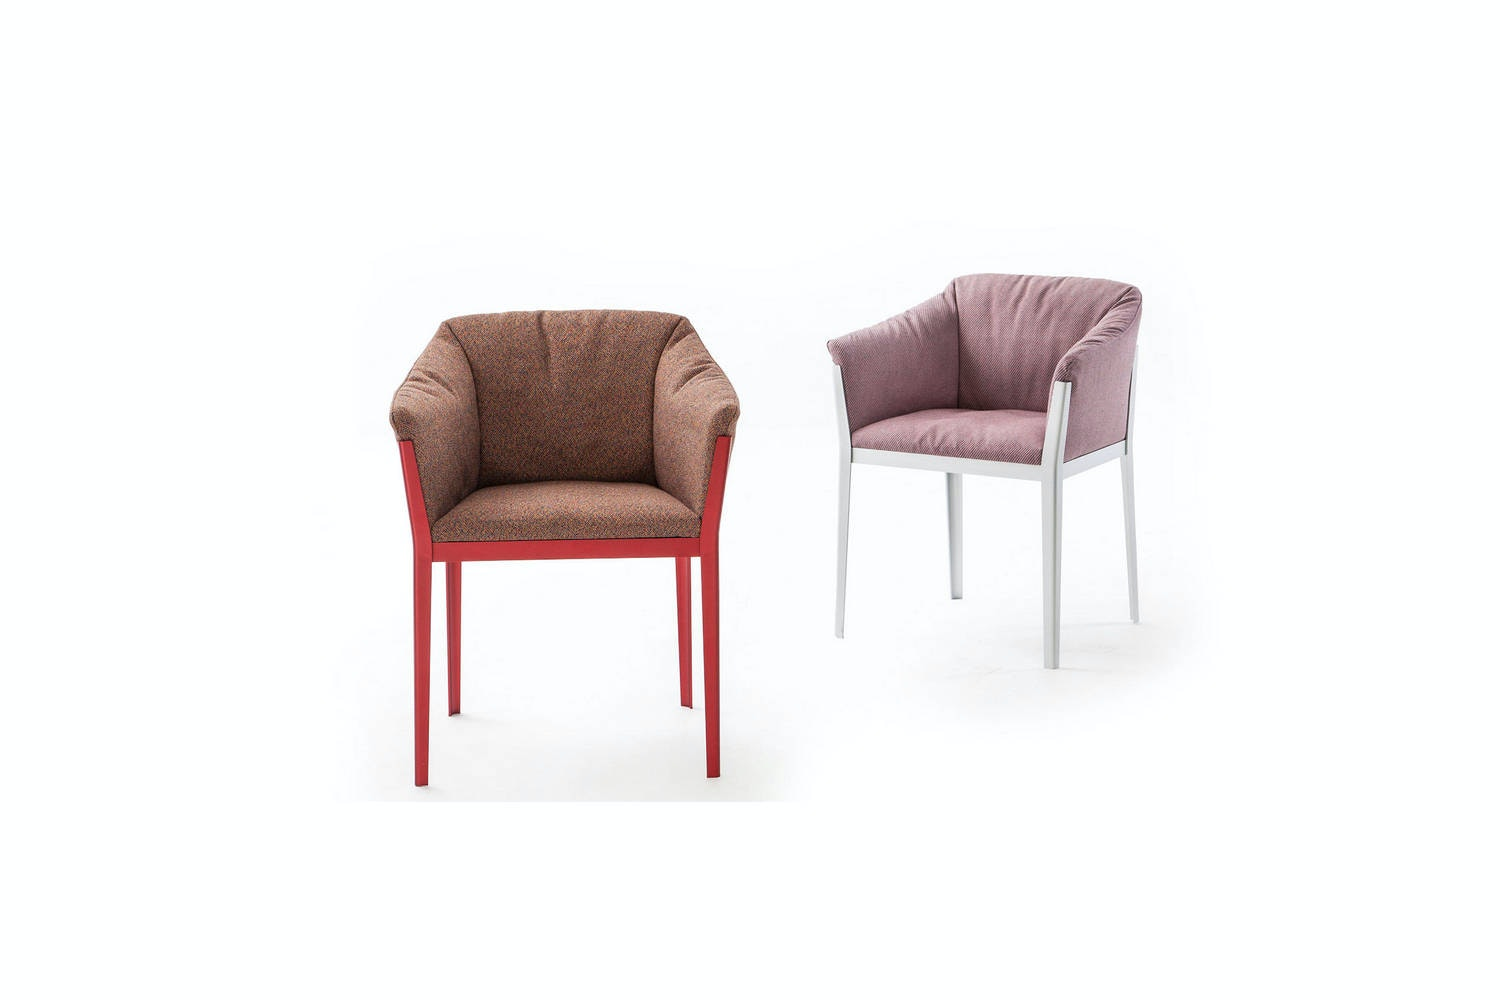 140 Cotone Chair by Ronan & Erwan Bouroullec for Cassina